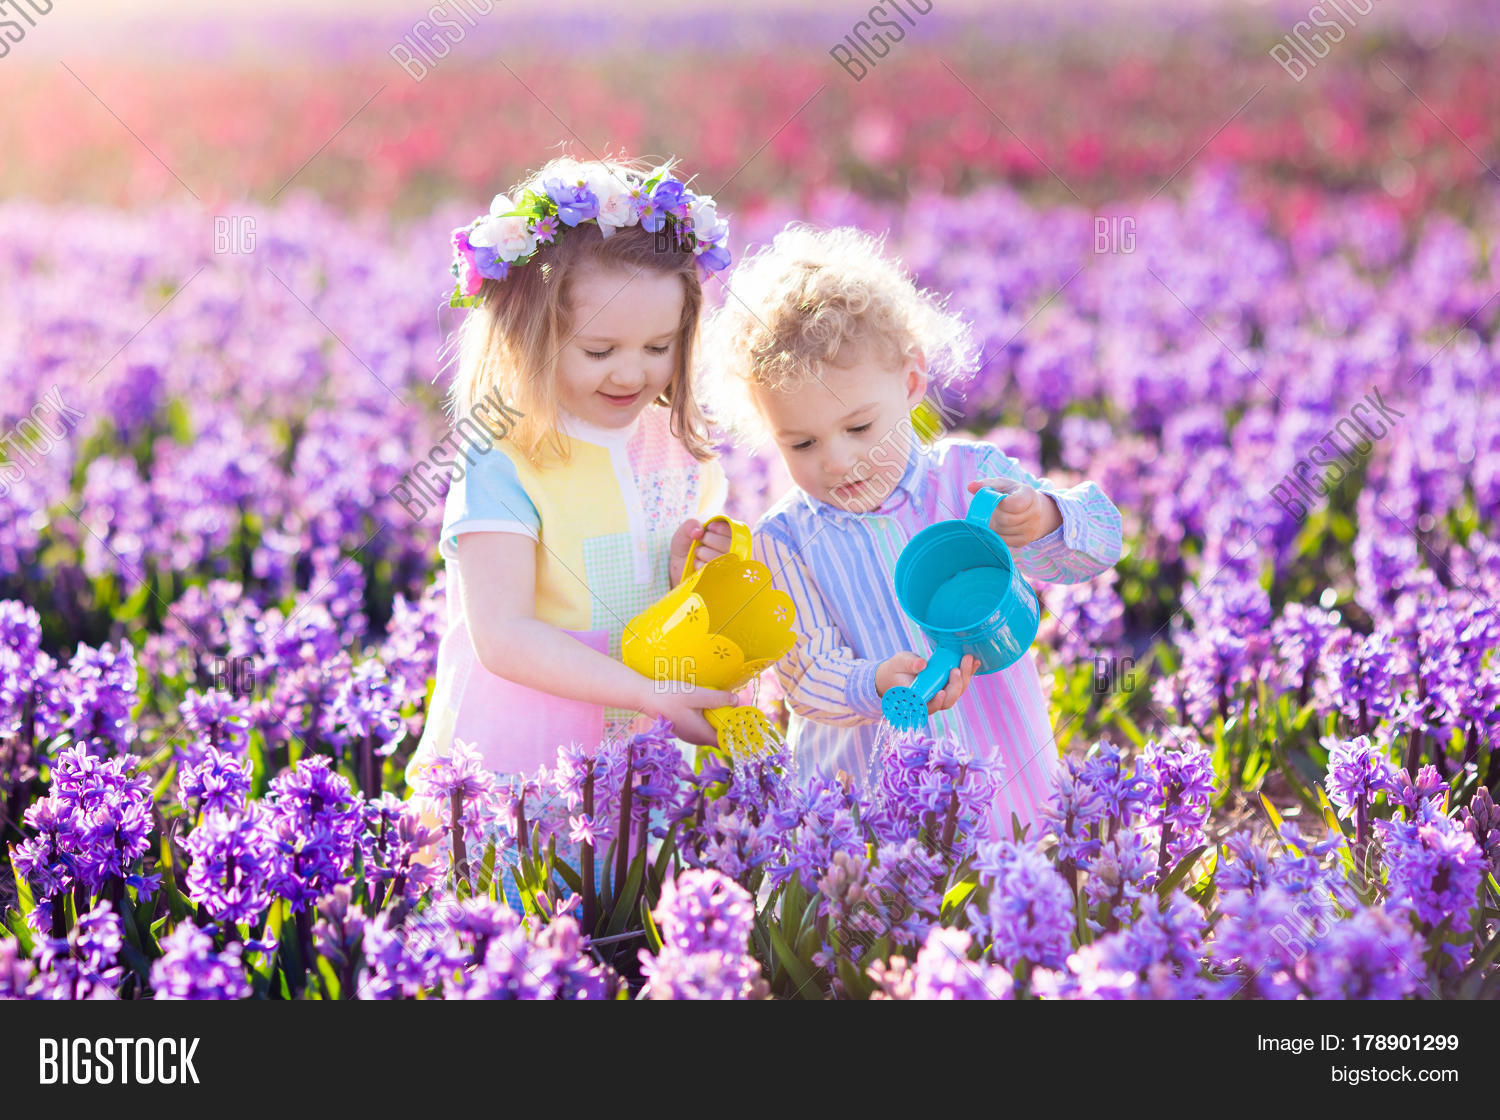 Children Planting Image Photo Free Trial Bigstock